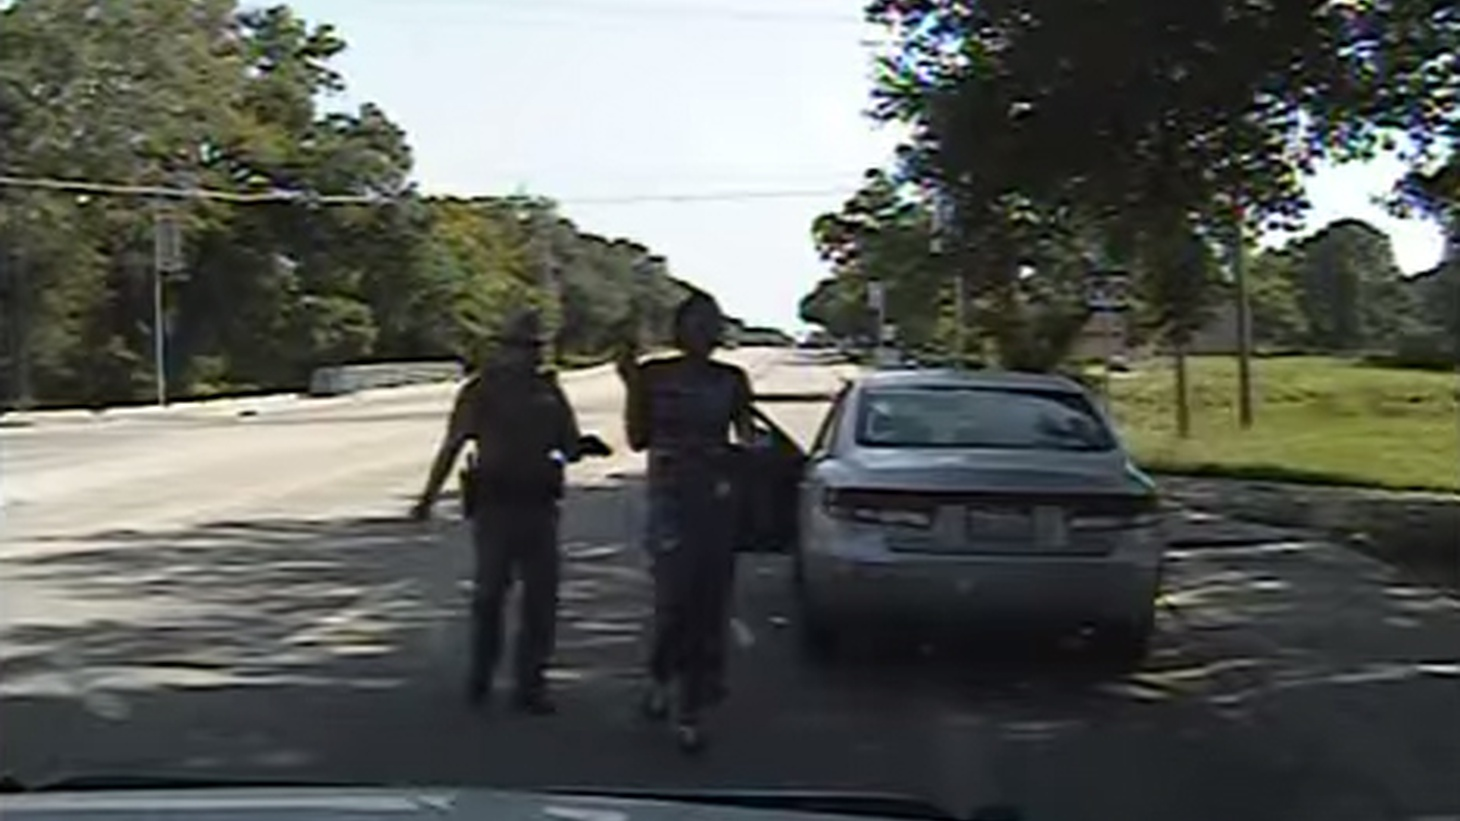 """The coroner in Waller County, Texas called it a jailhouse suicide, but authorities are investigating it as a case of murder. Since Sandra Bland was found hanged in her jail cell last week, her family says the verdict of suicide is """"unfathomable."""" They've demanded to know how a routine traffic stop led to her arrest in the first place.        Yesterday, Texas officials released  video  recorded from the officers dash cam.  What does that evidence reveal about why the young, black woman was originally arrested? Gloria Browne-Marshall is a professor of constitutional law at John Jay College of Criminal Justice in New York. She's author of  Race, Law and American Society: 1607 to the Present ."""